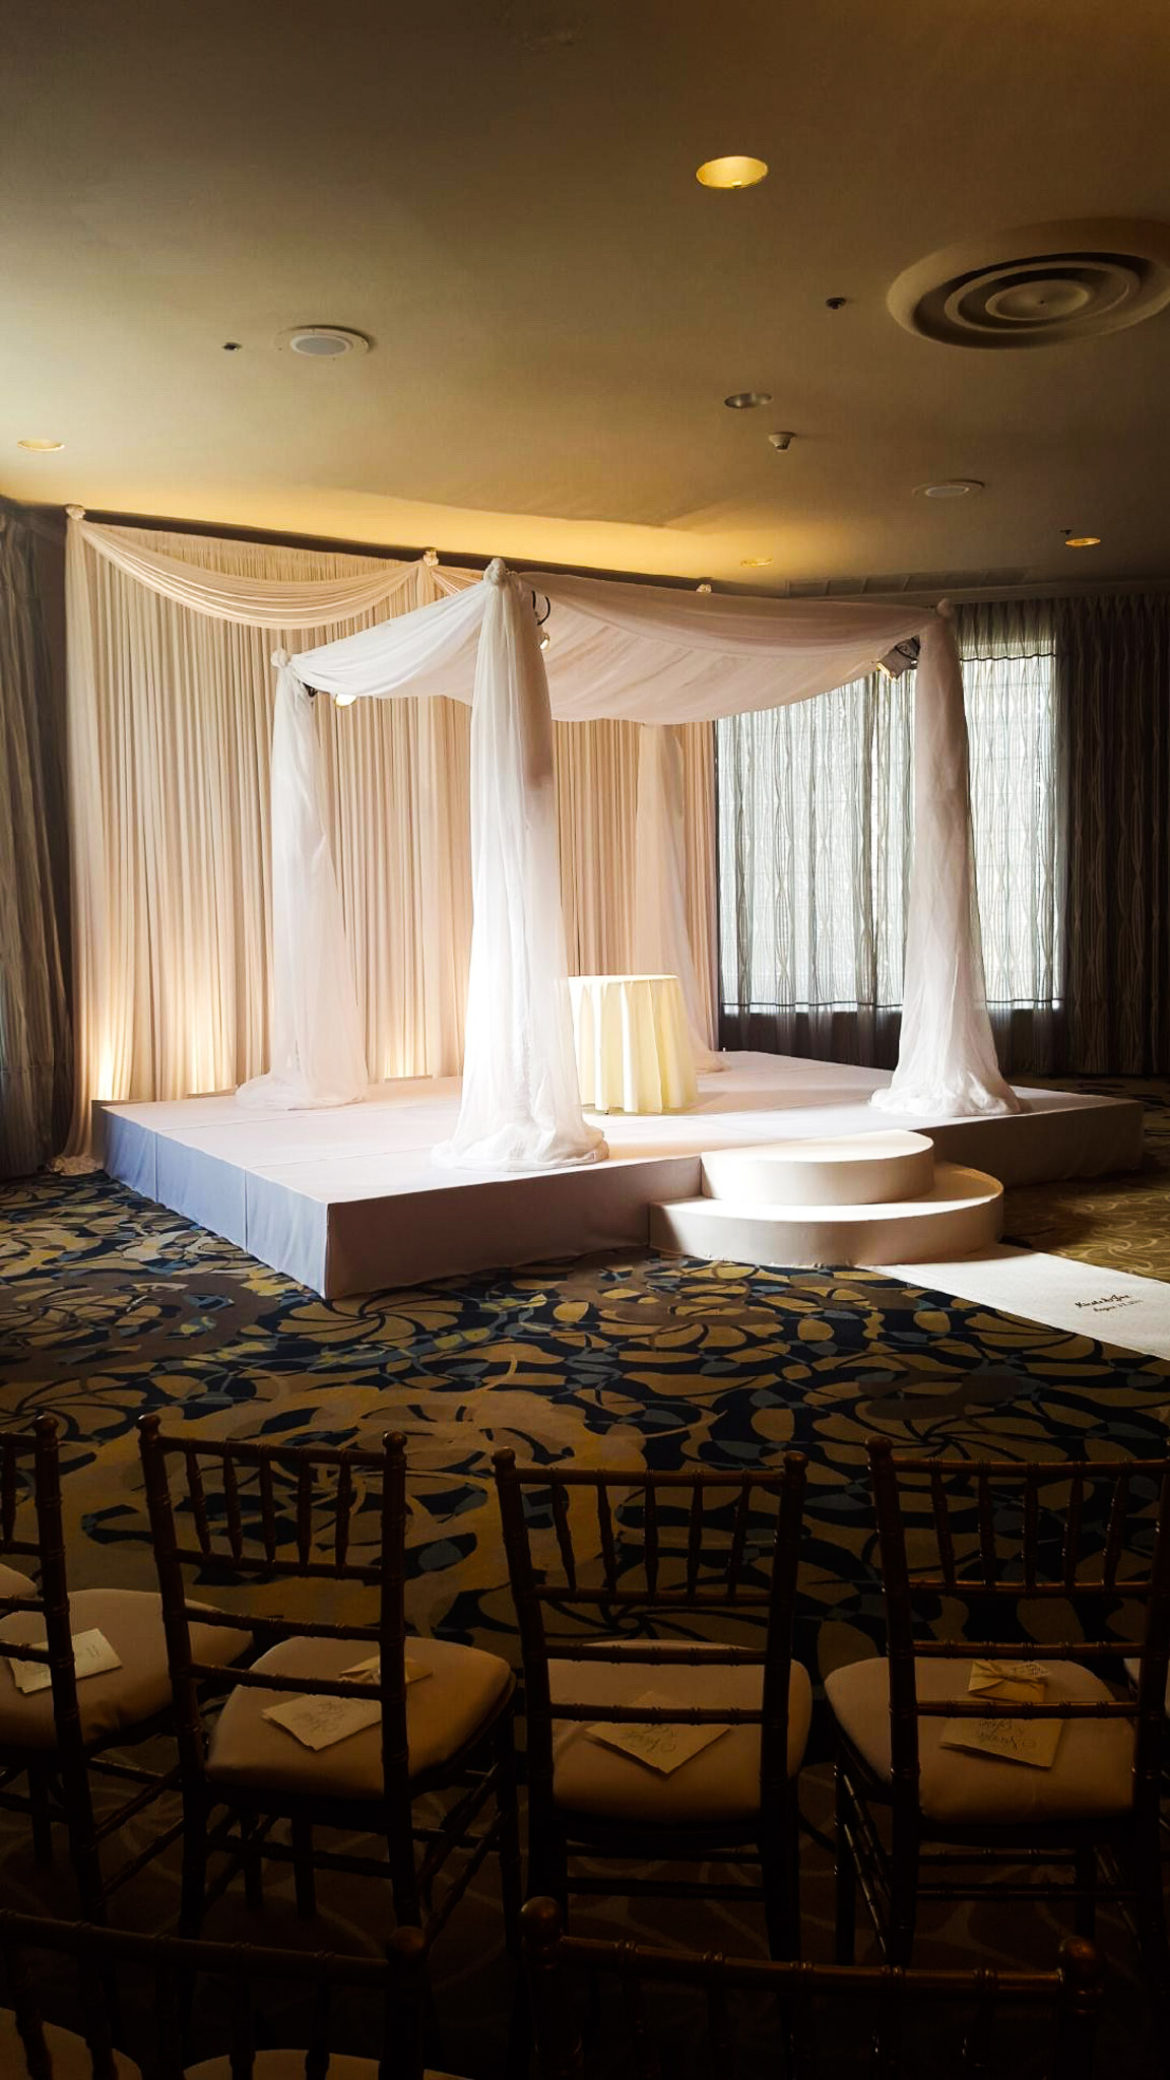 Elegant_Event_Lighting_Chicago_Orrington_Hilton_Evanston_Wedding_Ivory_Backdrop_Draping_Chuppah_Bridal_Canopy_Stage_Cover_Aisle_Runner_Moon_Steps